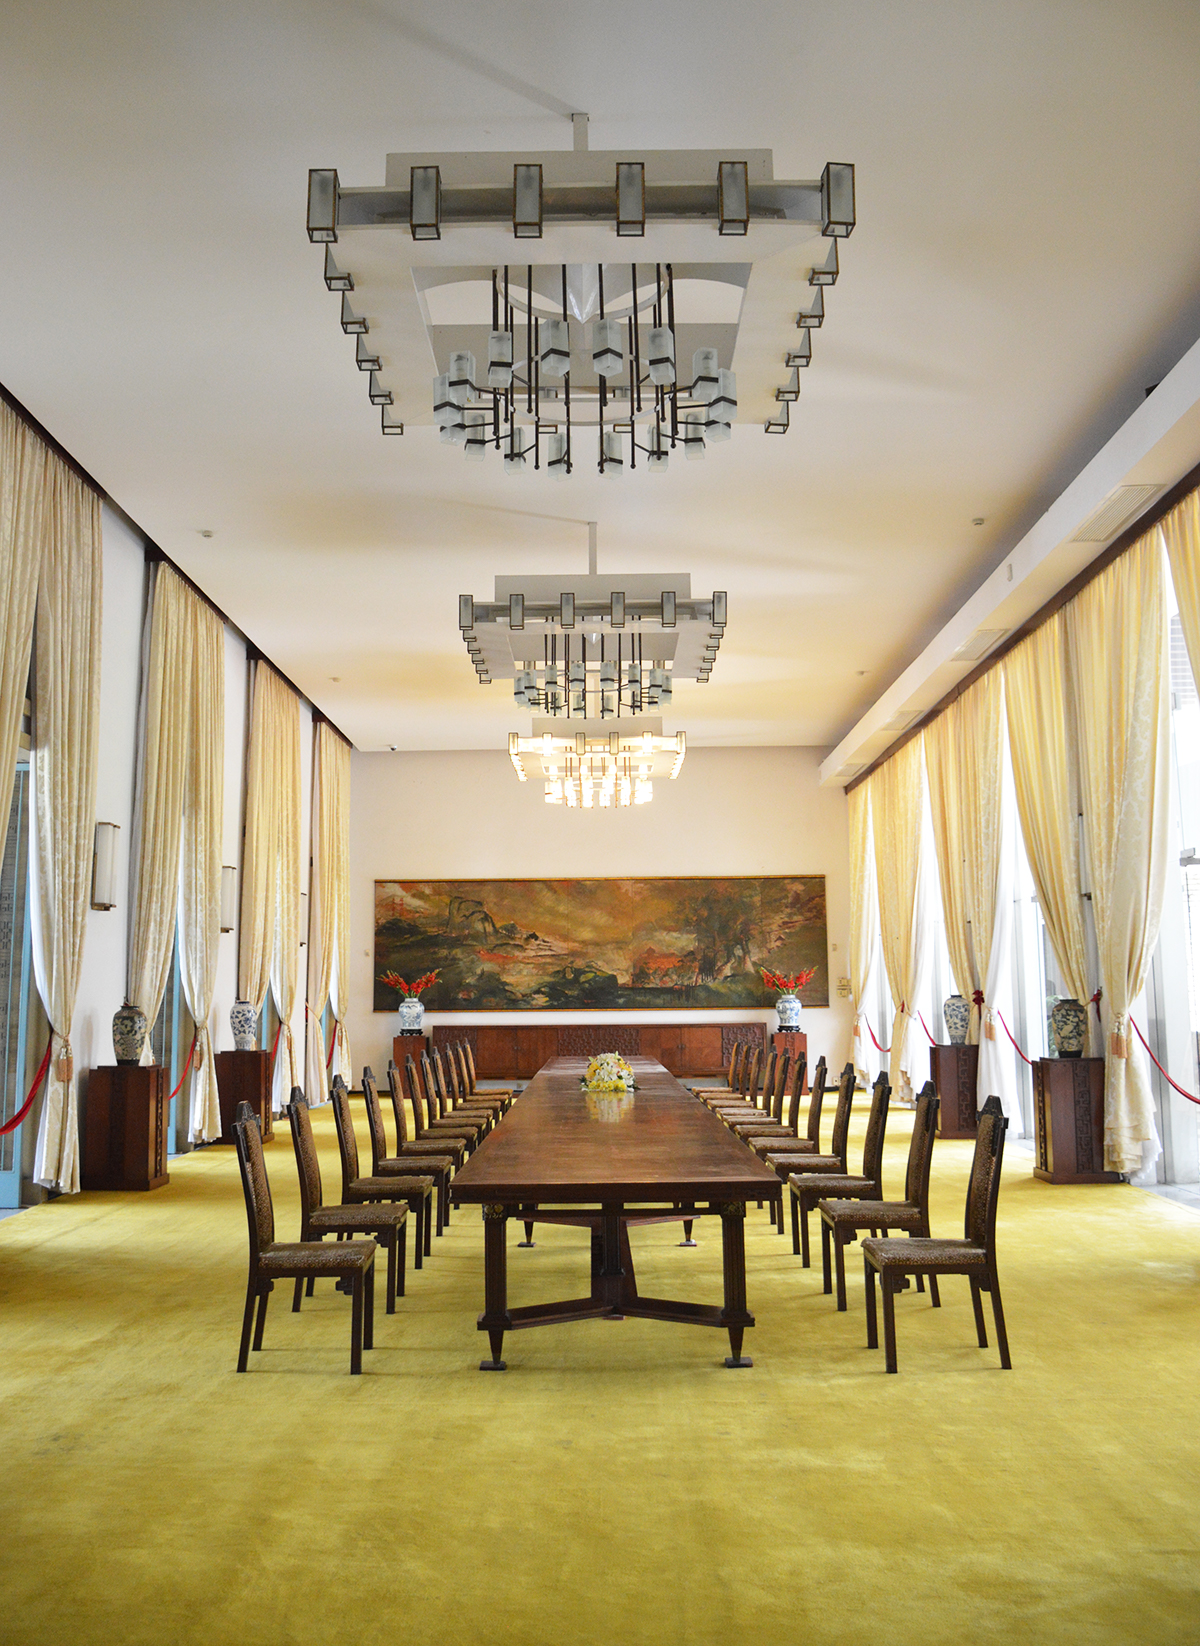 Reunification Palace Things to do in Ho Chi Minh City Double-Barrelled Travel